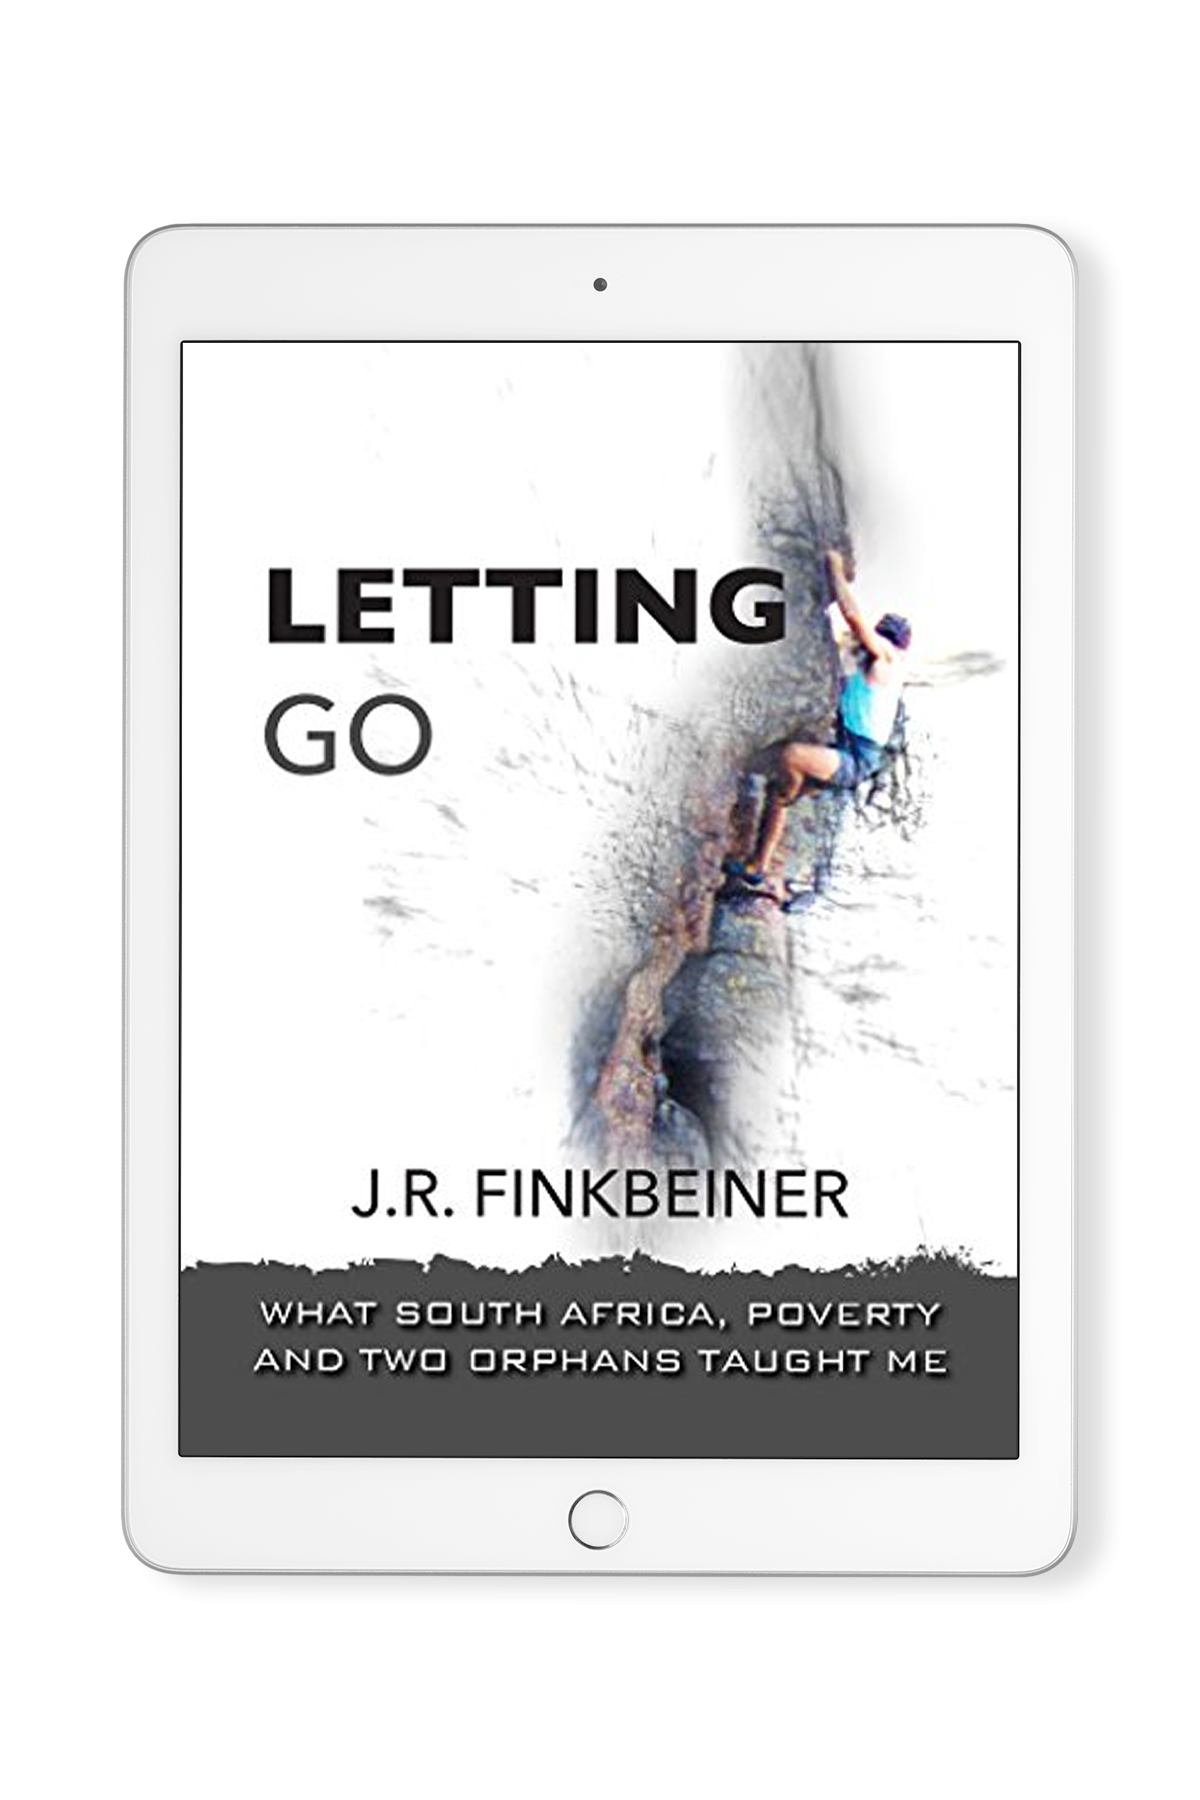 Letting Go: What South Africa, Poverty and Two Orphans Taught Me